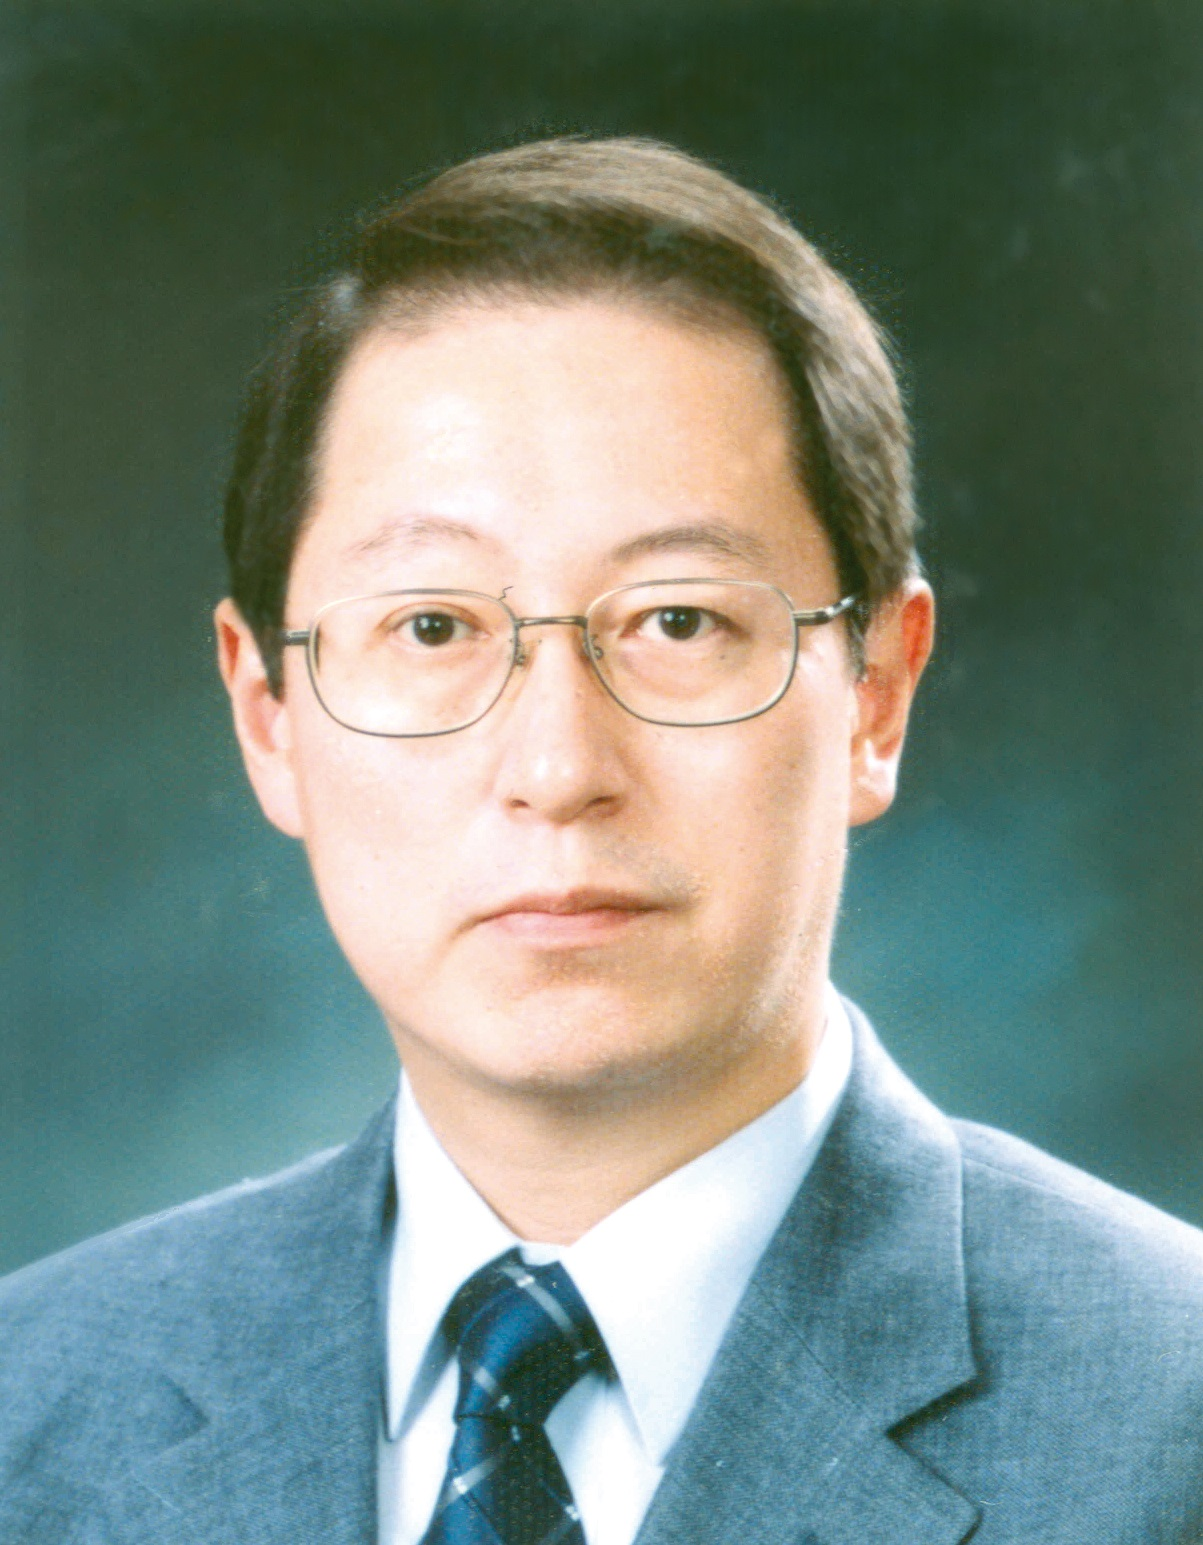 Photo of Kijoong Kim